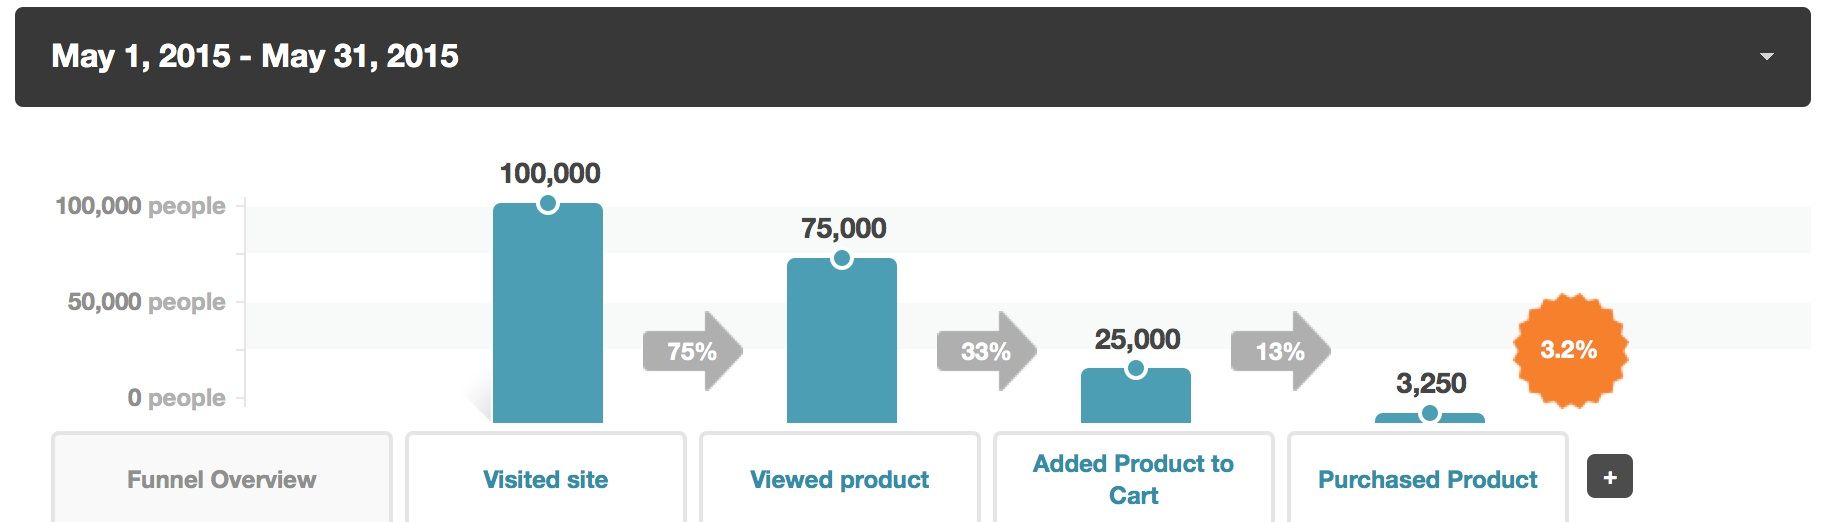 may-kissmetrics-funnel-report-ecommerce-example